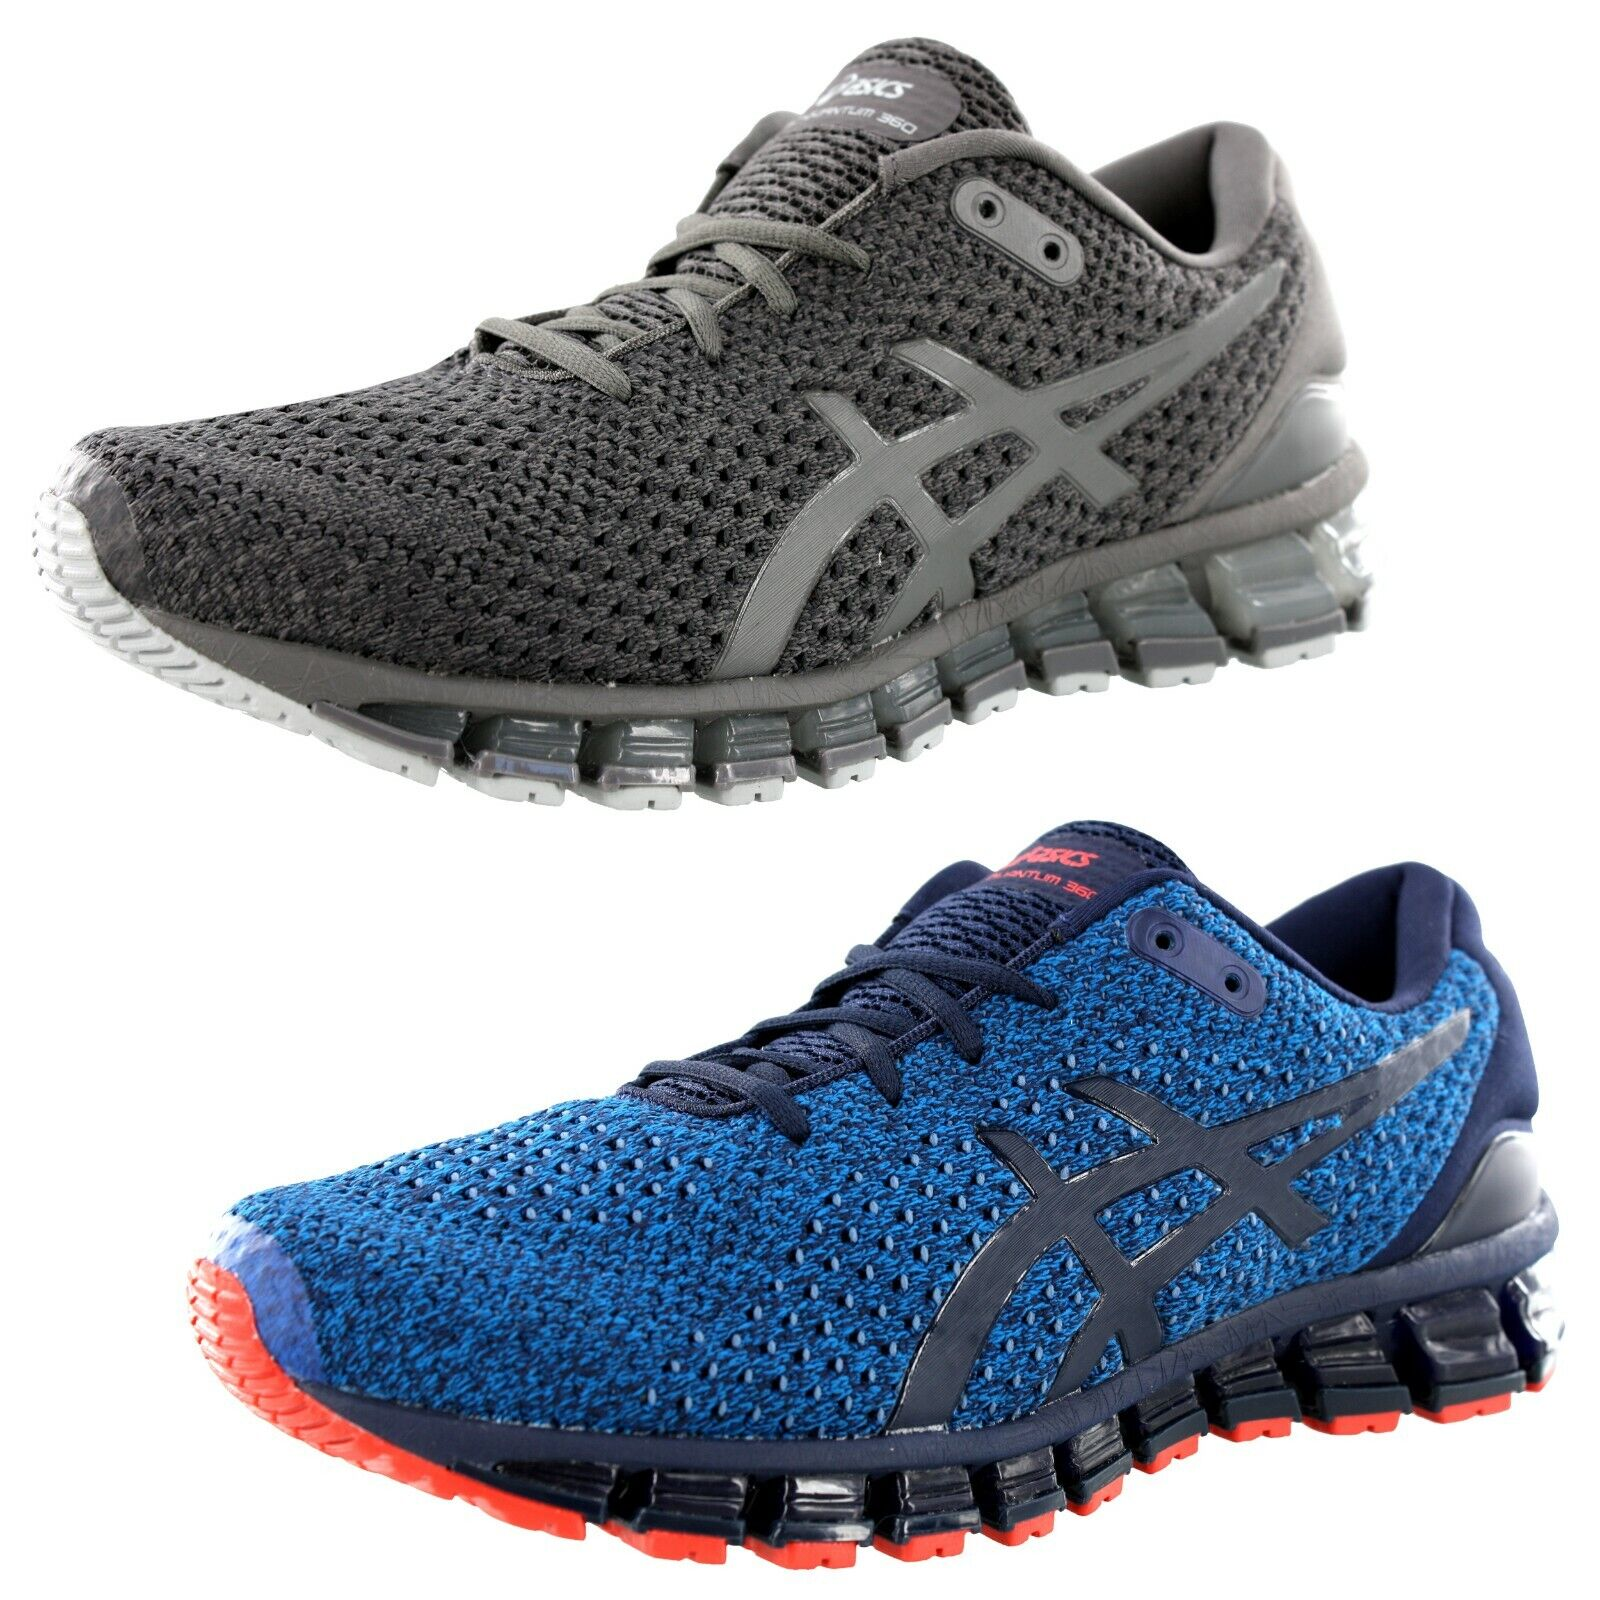 meilleure sélection c2a6c e700e ASICS MEN'S GEL-QUANTUM 360 KNIT 2 RUNNING SHOES